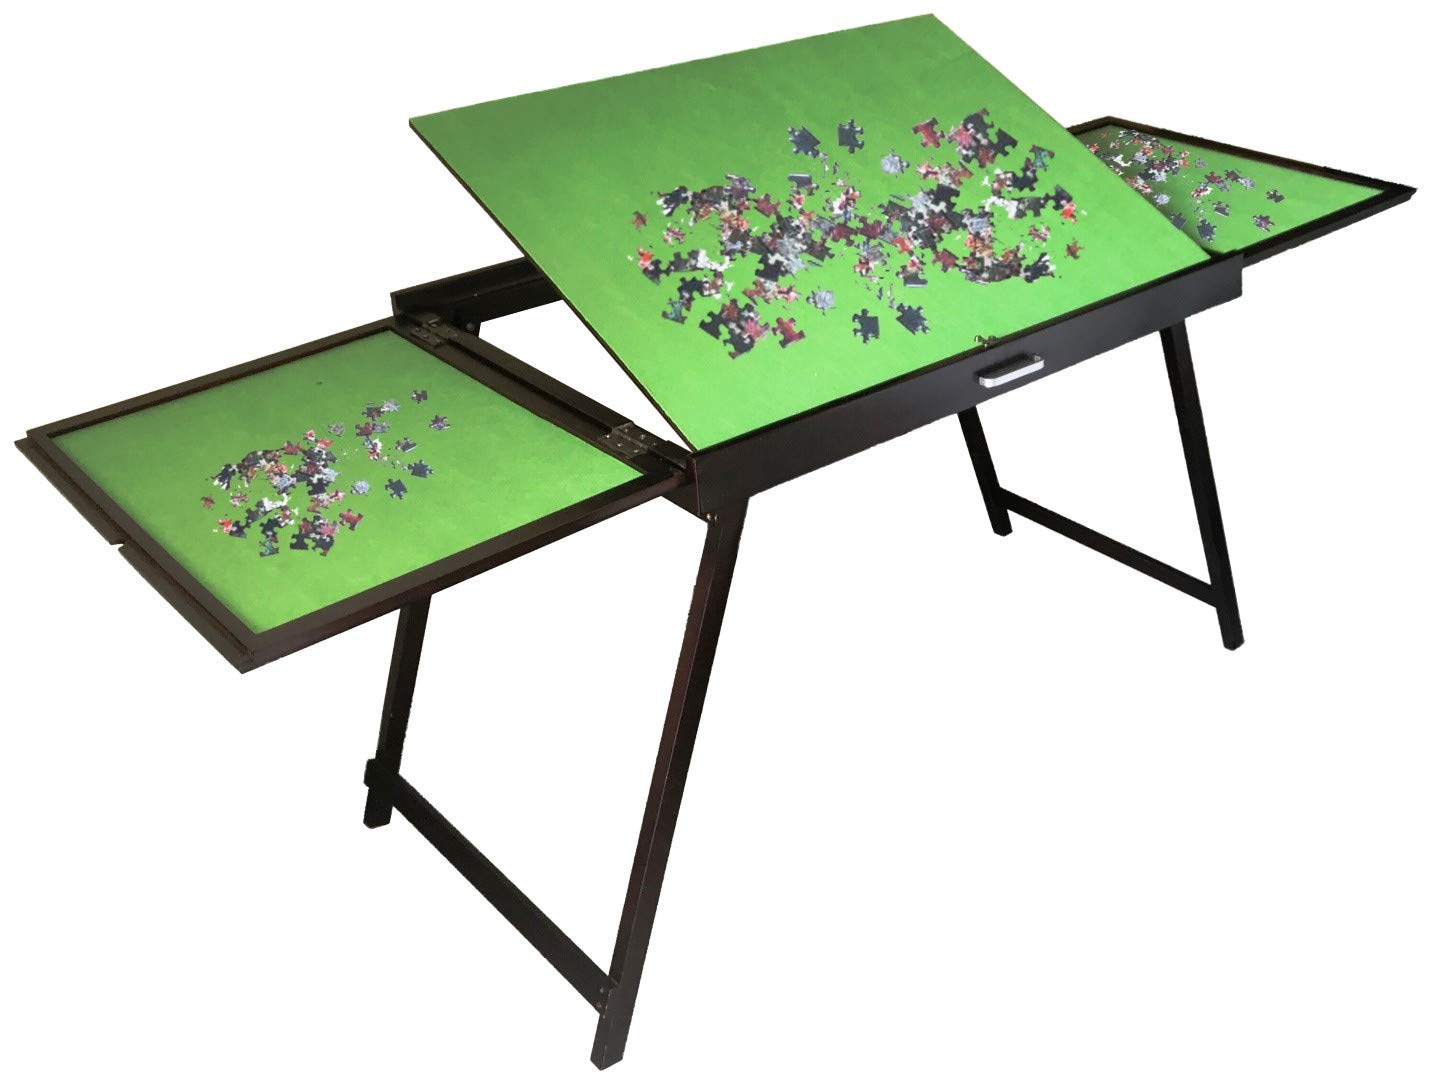 2019 New versionjigsaw Puzzle Table Storage Folding Tilting Table 1500 pcs mat PTTFT by byqs us